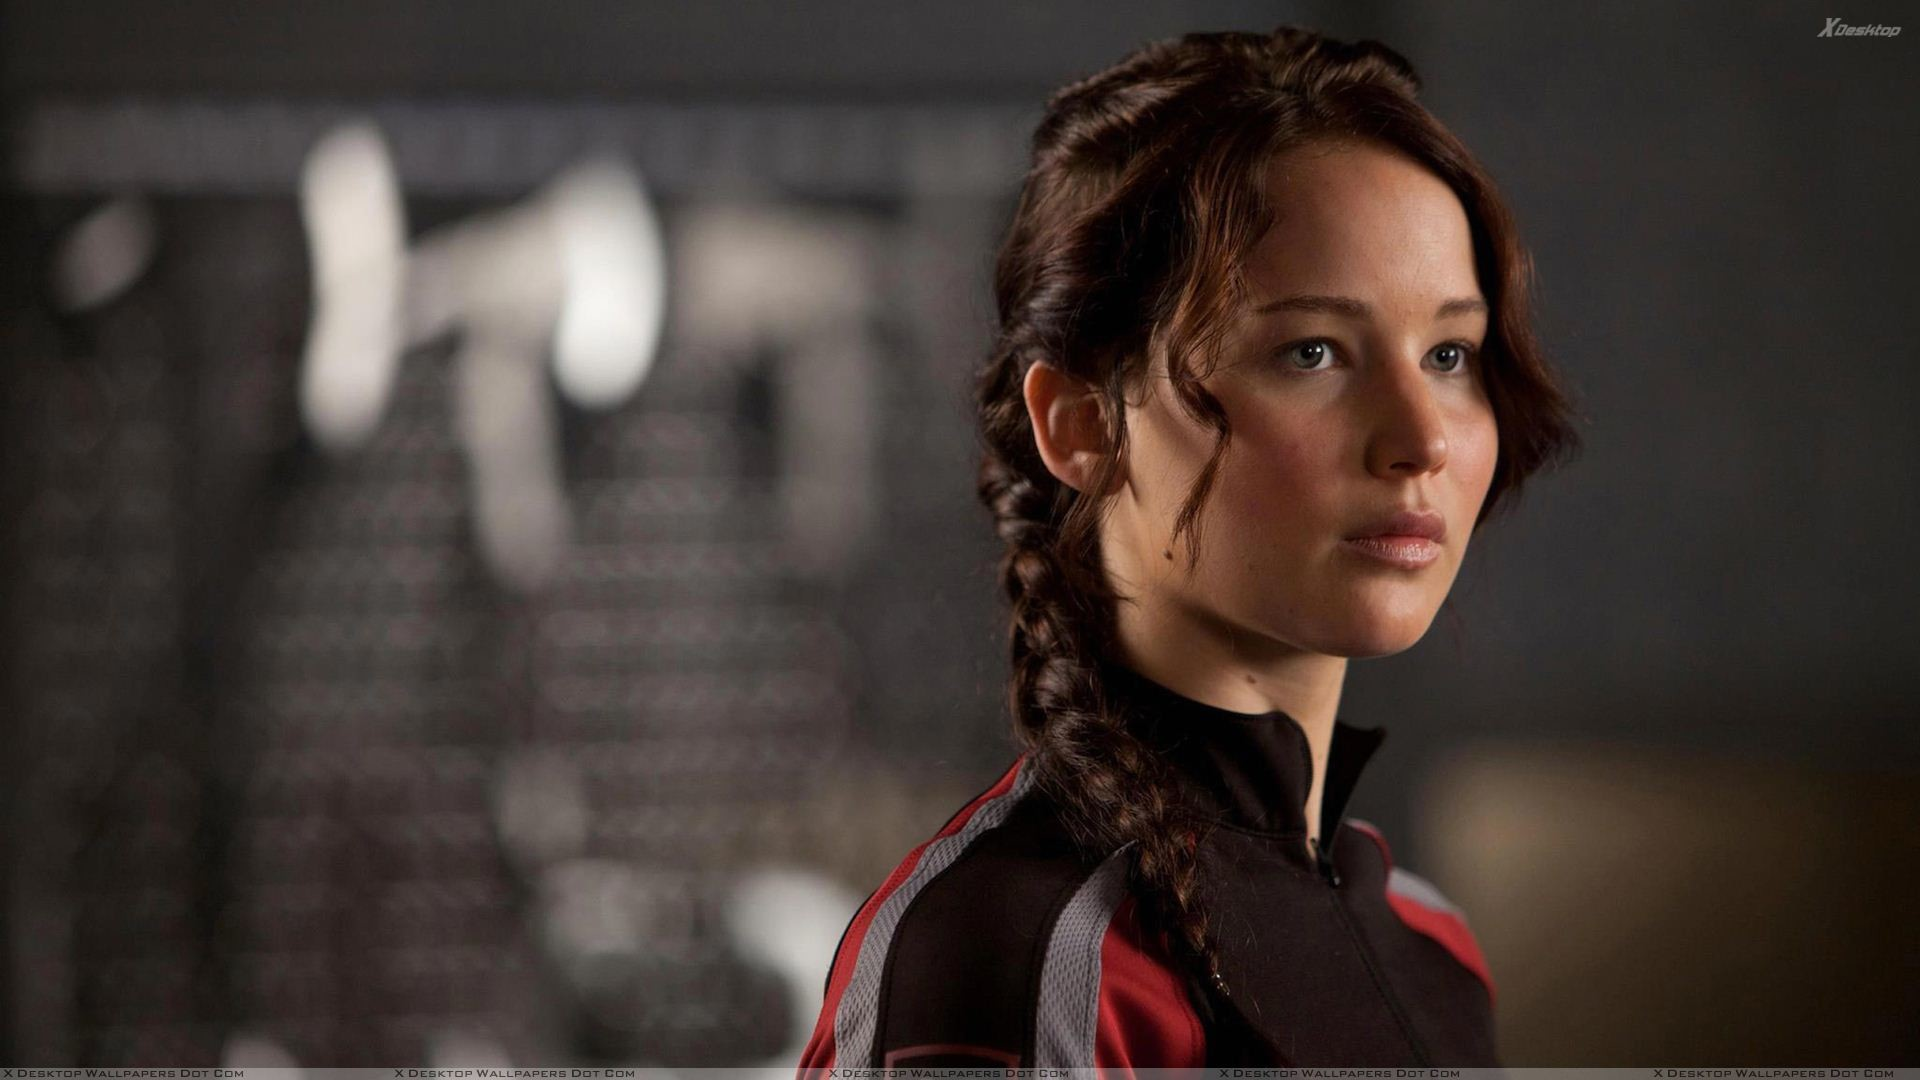 1920x1080 Jennifer Lawrence Hunger Games Wallpaper